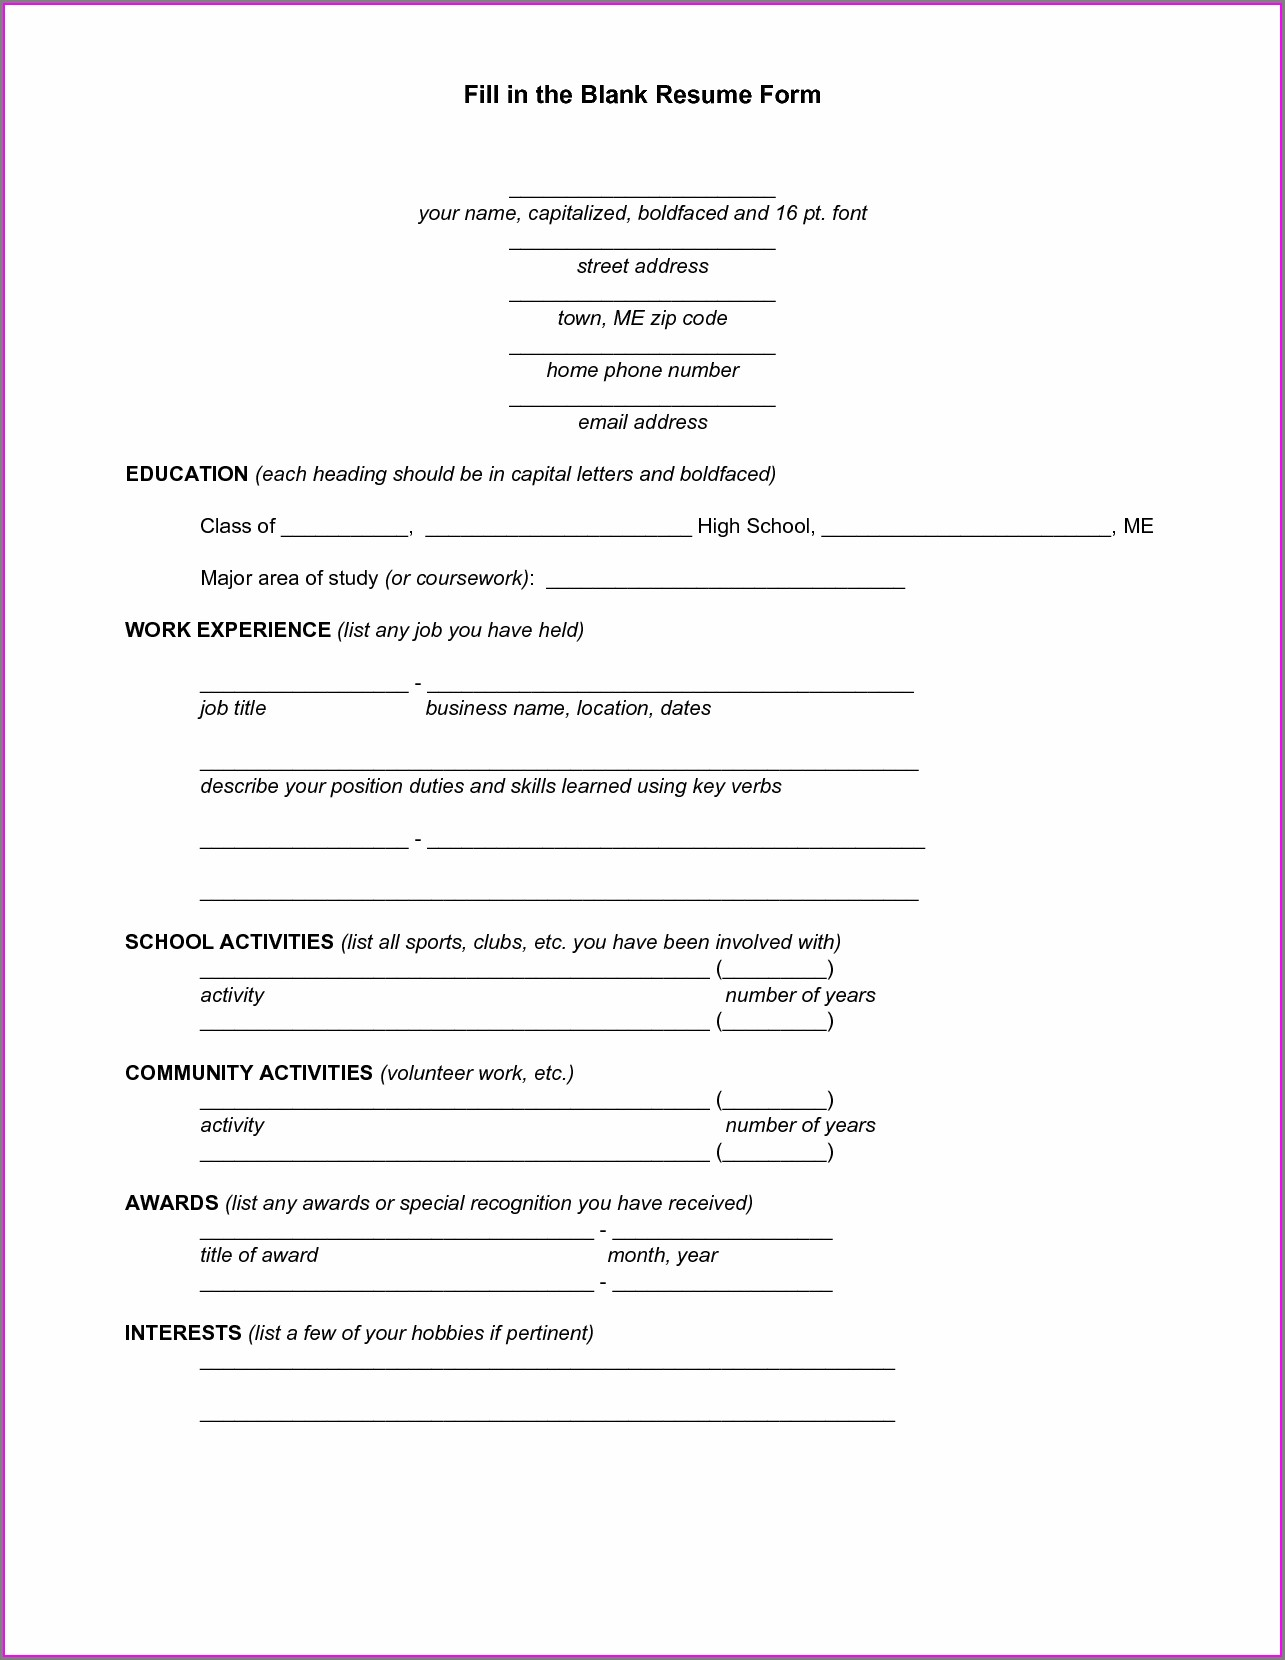 Blank Resume Forms To Fill Out